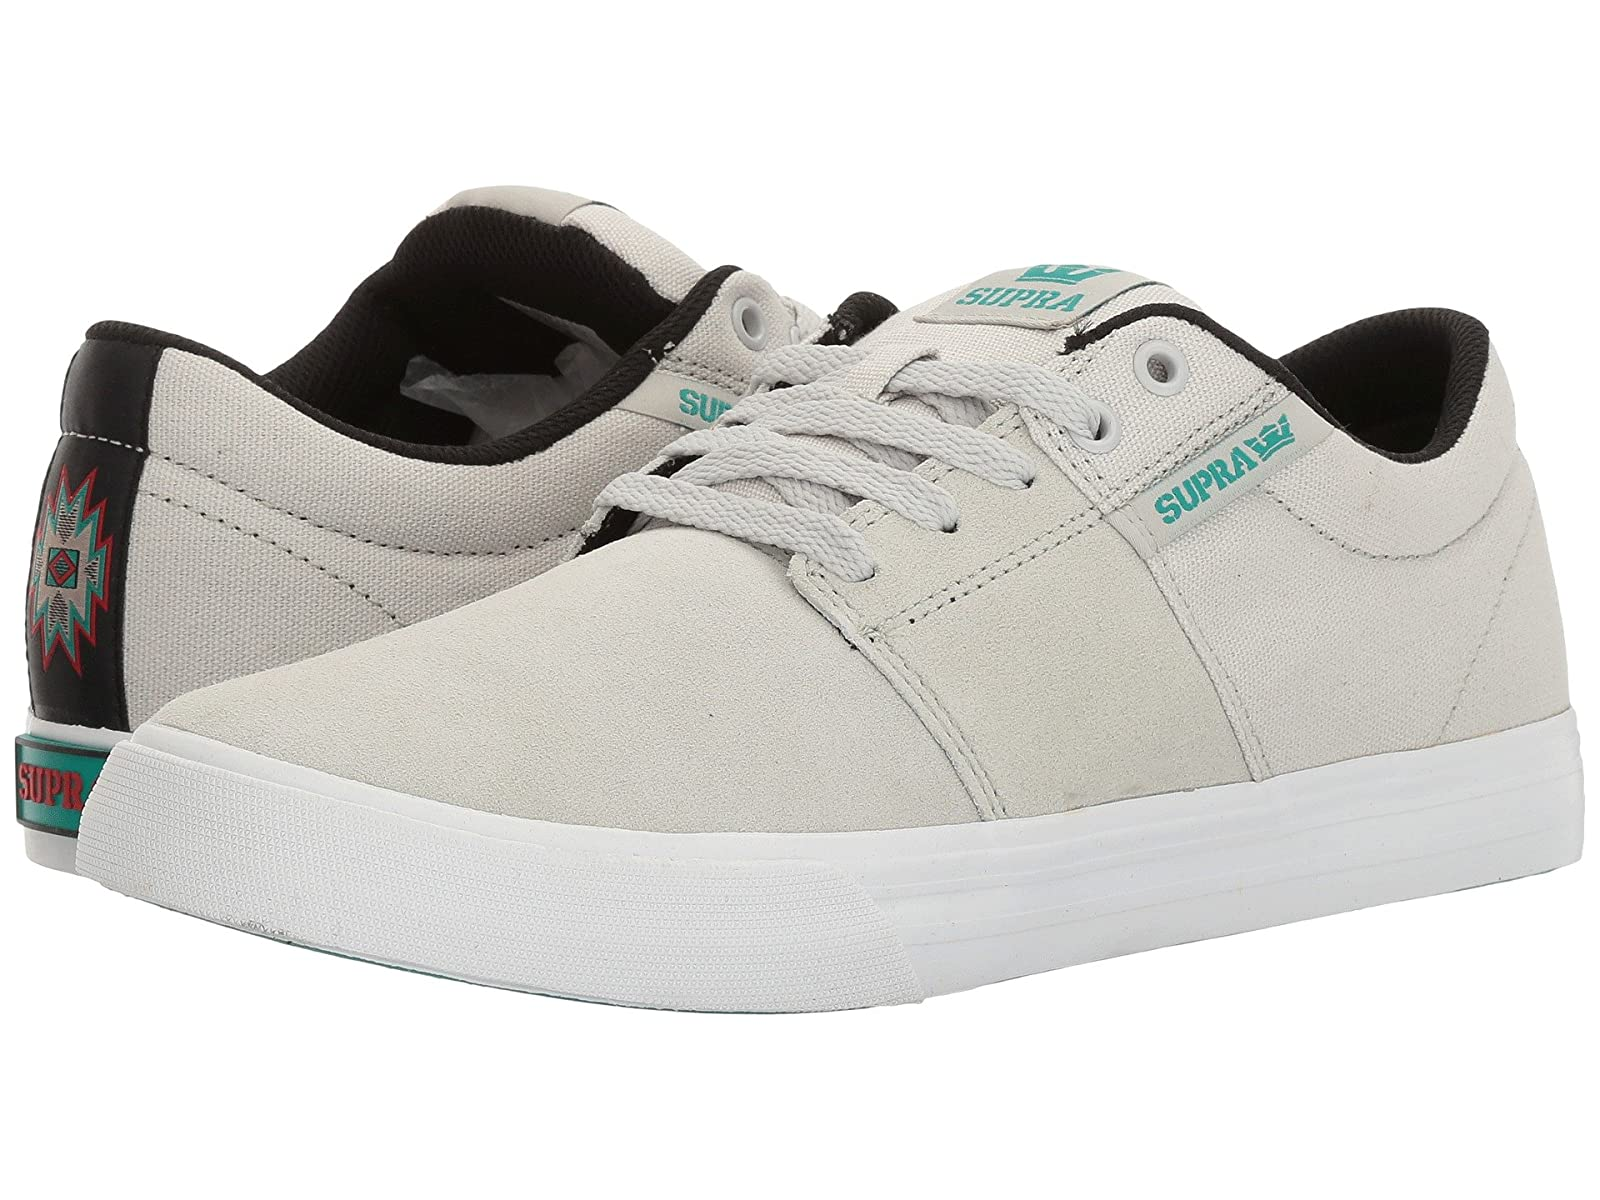 Supra Stacks Vulc IICheap and distinctive eye-catching shoes